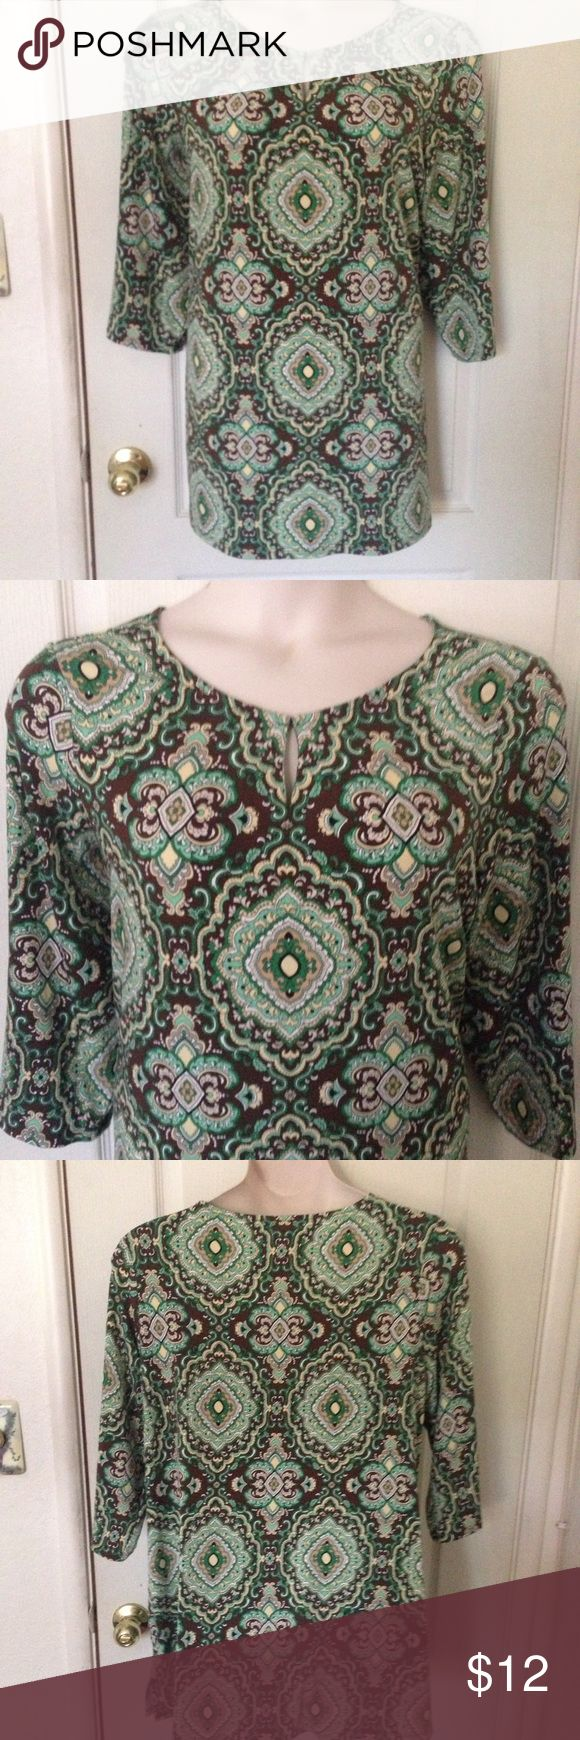 2X Green & Brown Paisley Tunic No tags. In great condition! Super cuter with brown leggings. Bust flat unstretched 24, length 31 Tops